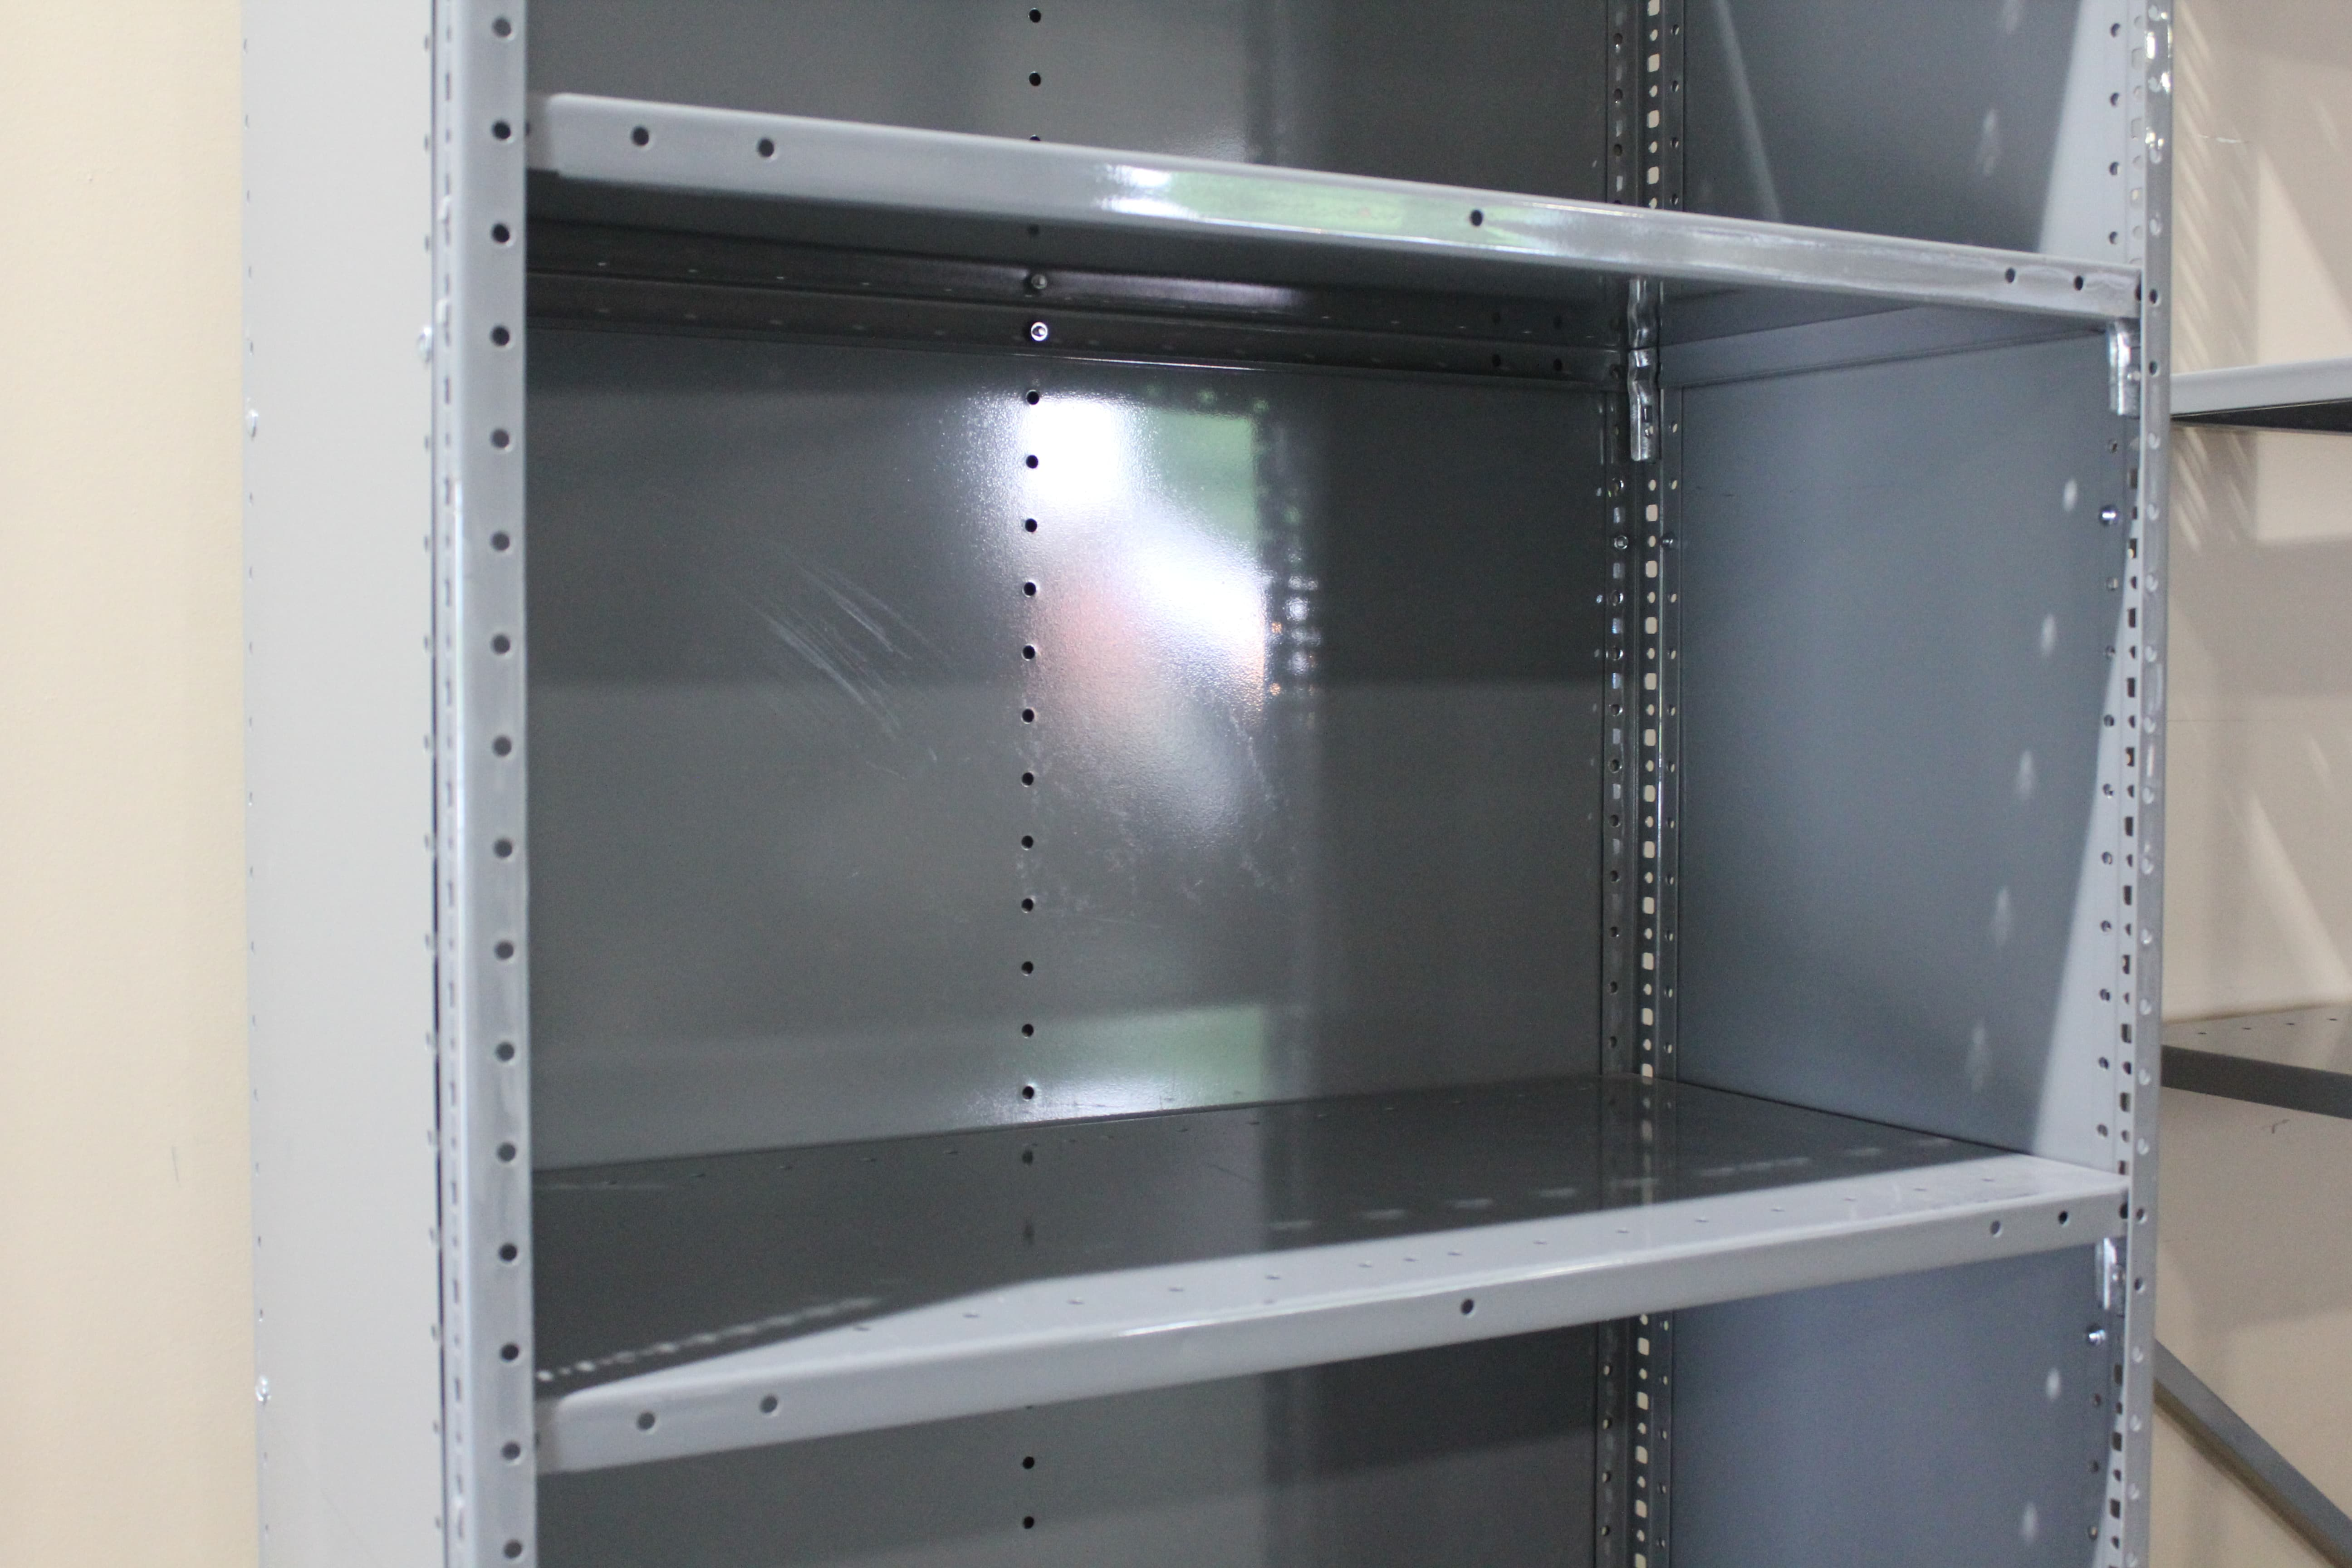 Closed-Steel-Metal-Shelving-9 Rack With Wire Shelves on